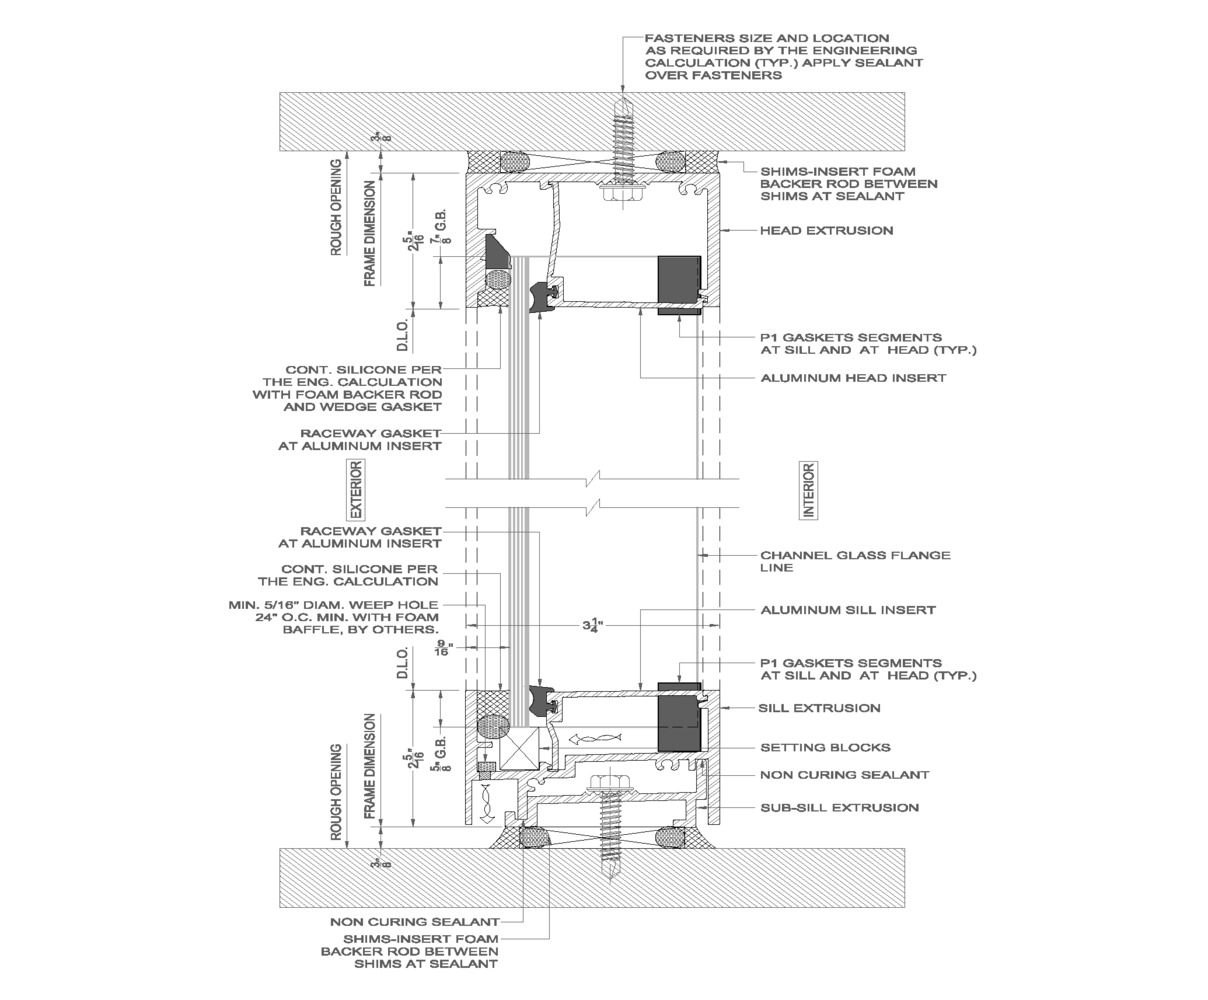 Wall Schematic Engineering Diagram Wiring Library Supply Smps Circuit Images Frompo Diffused Light How To Design Lantern Buildings With Self Supporting Glass Walls